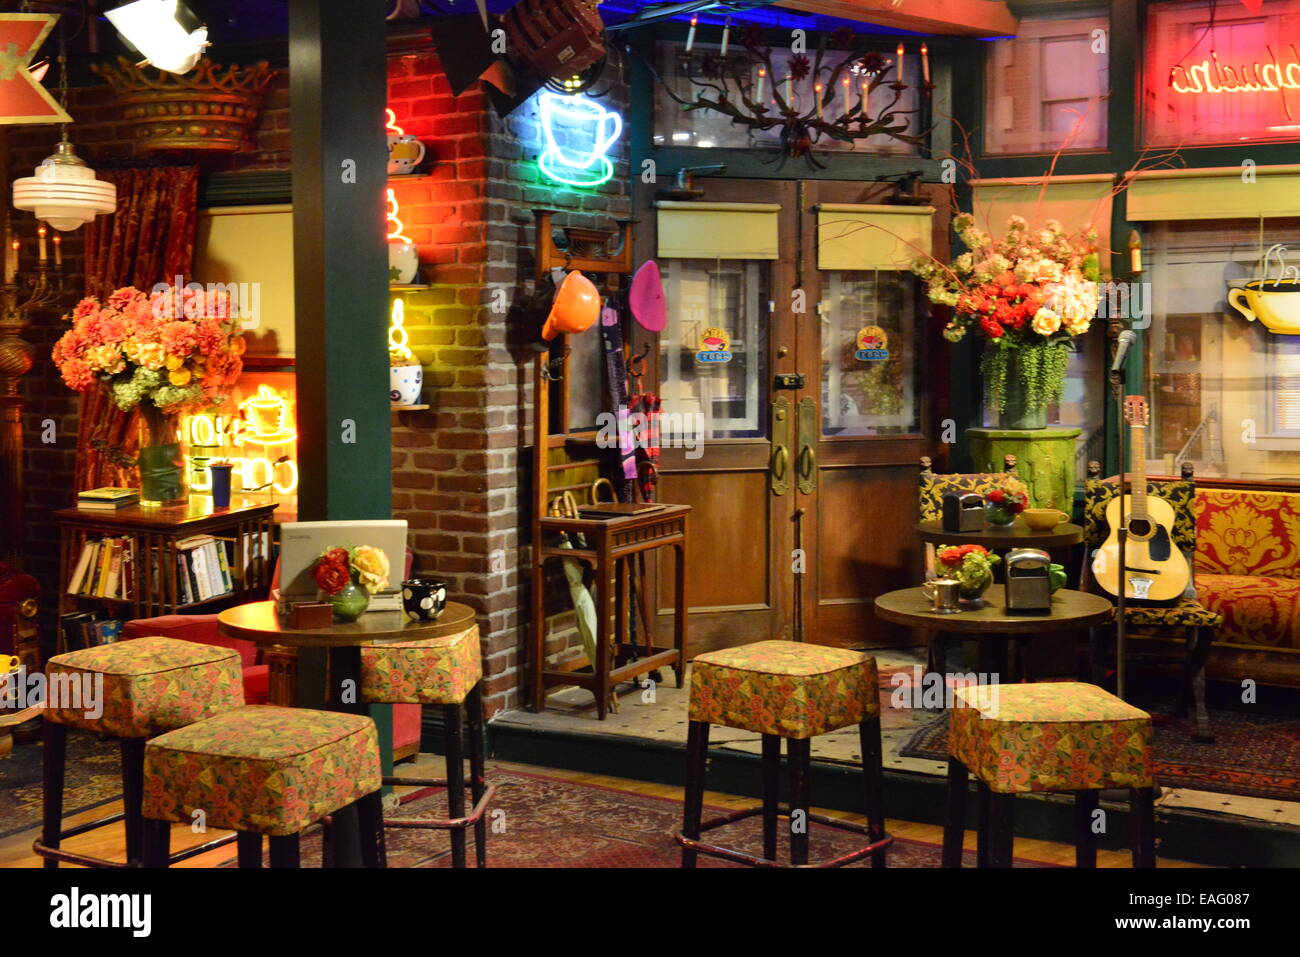 Warner Brothers Set For Friends Central Perk Bar Stock